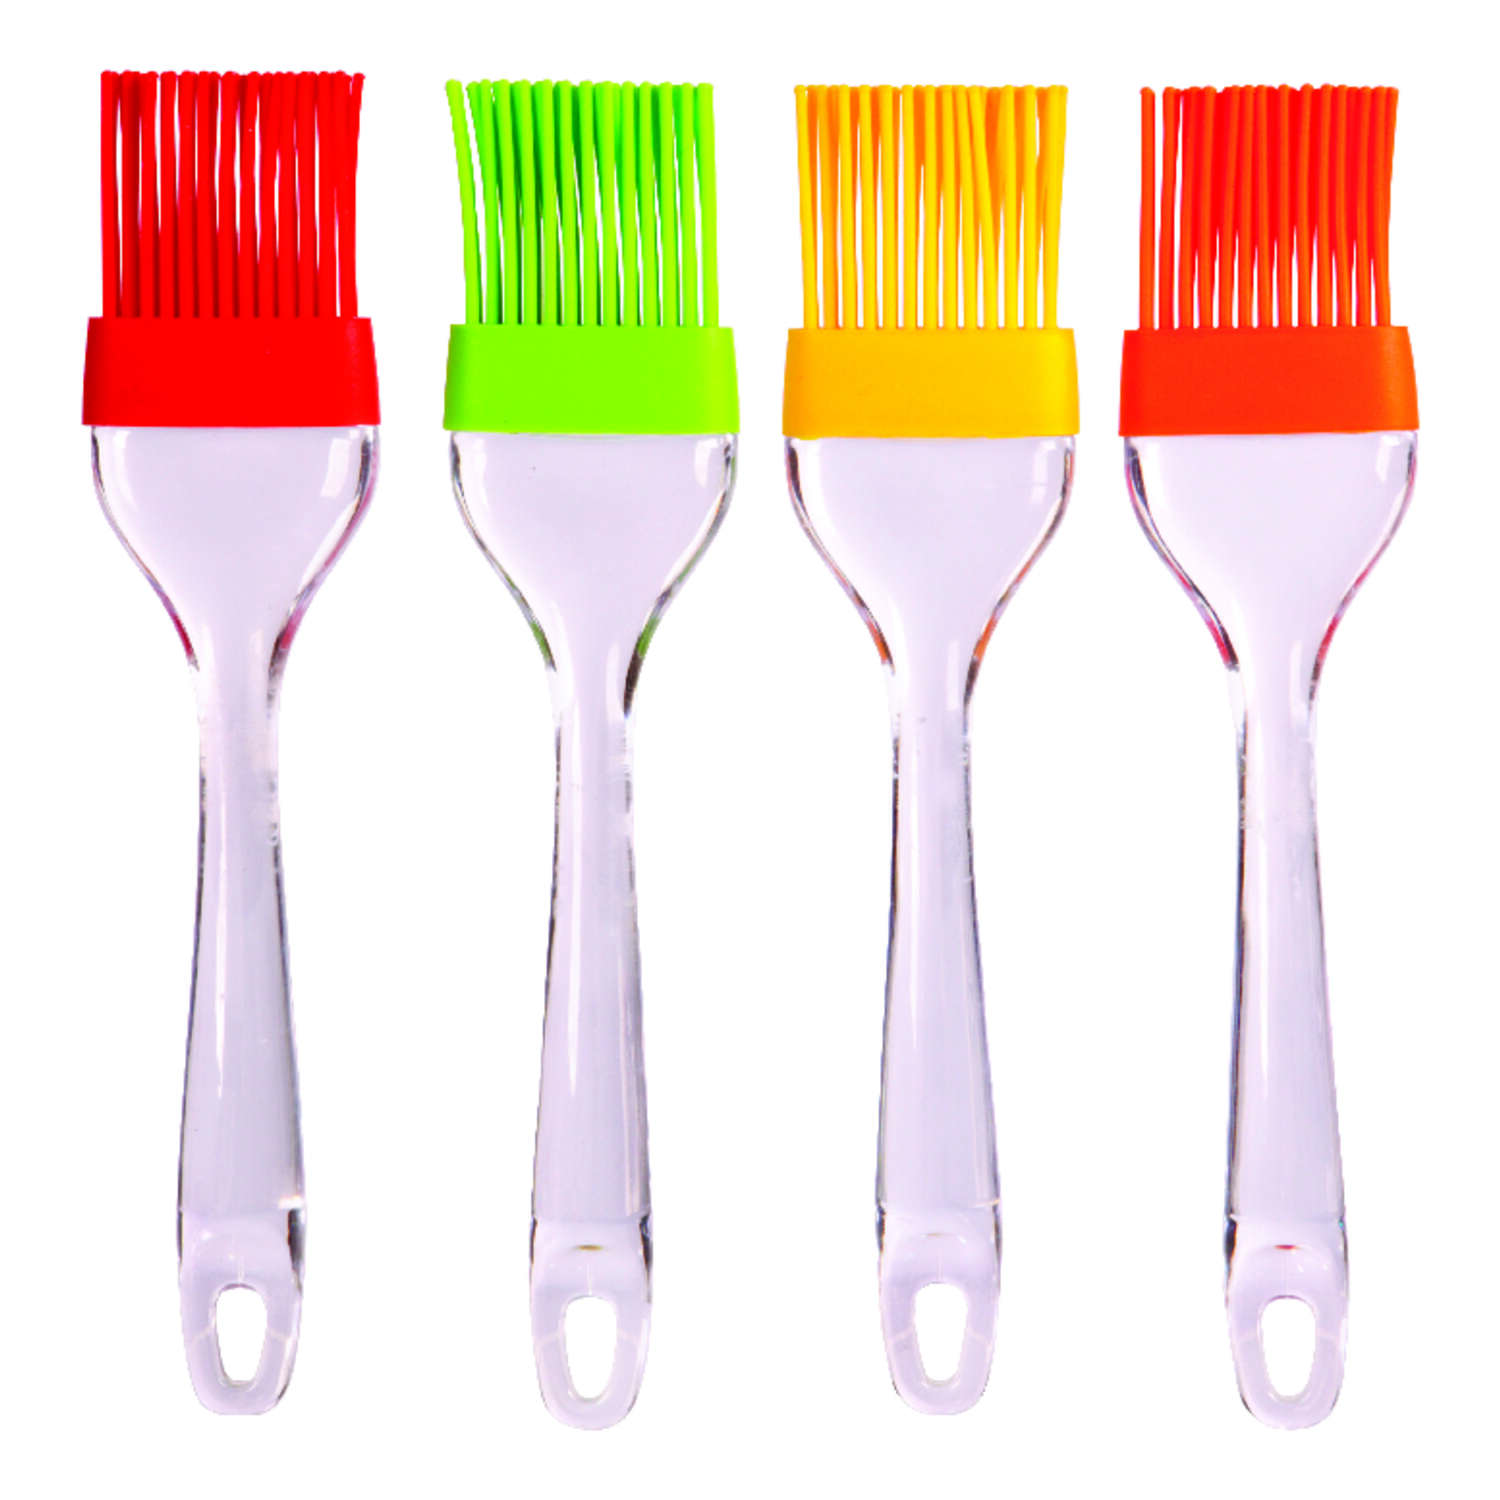 Home Plus  1.75 in. W x 8.5 in. L Assorted  Silicone  Basting Brush